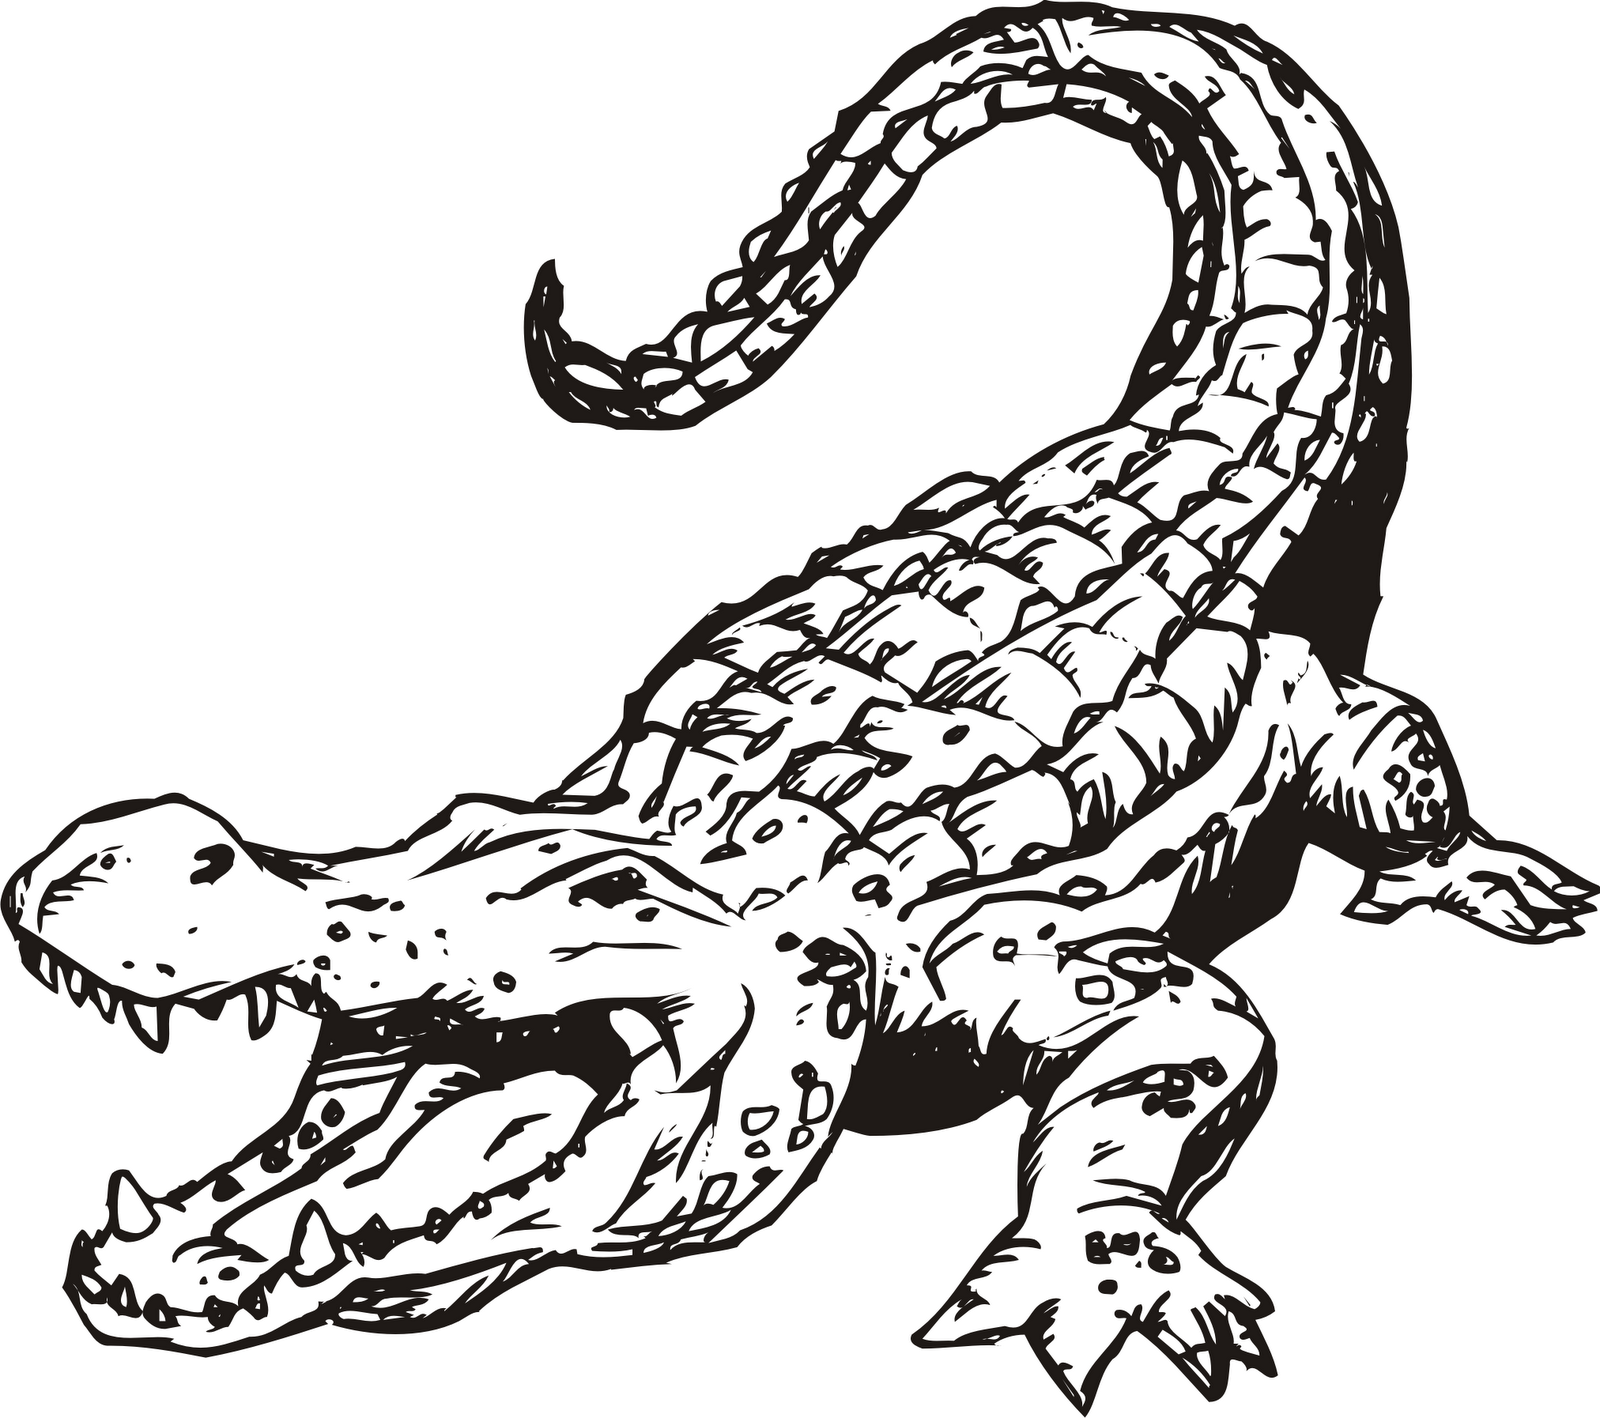 Mama and baby alligator clipart line drawing royalty free Free Gator Mascot Cliparts, Download Free Clip Art, Free Clip Art on ... royalty free